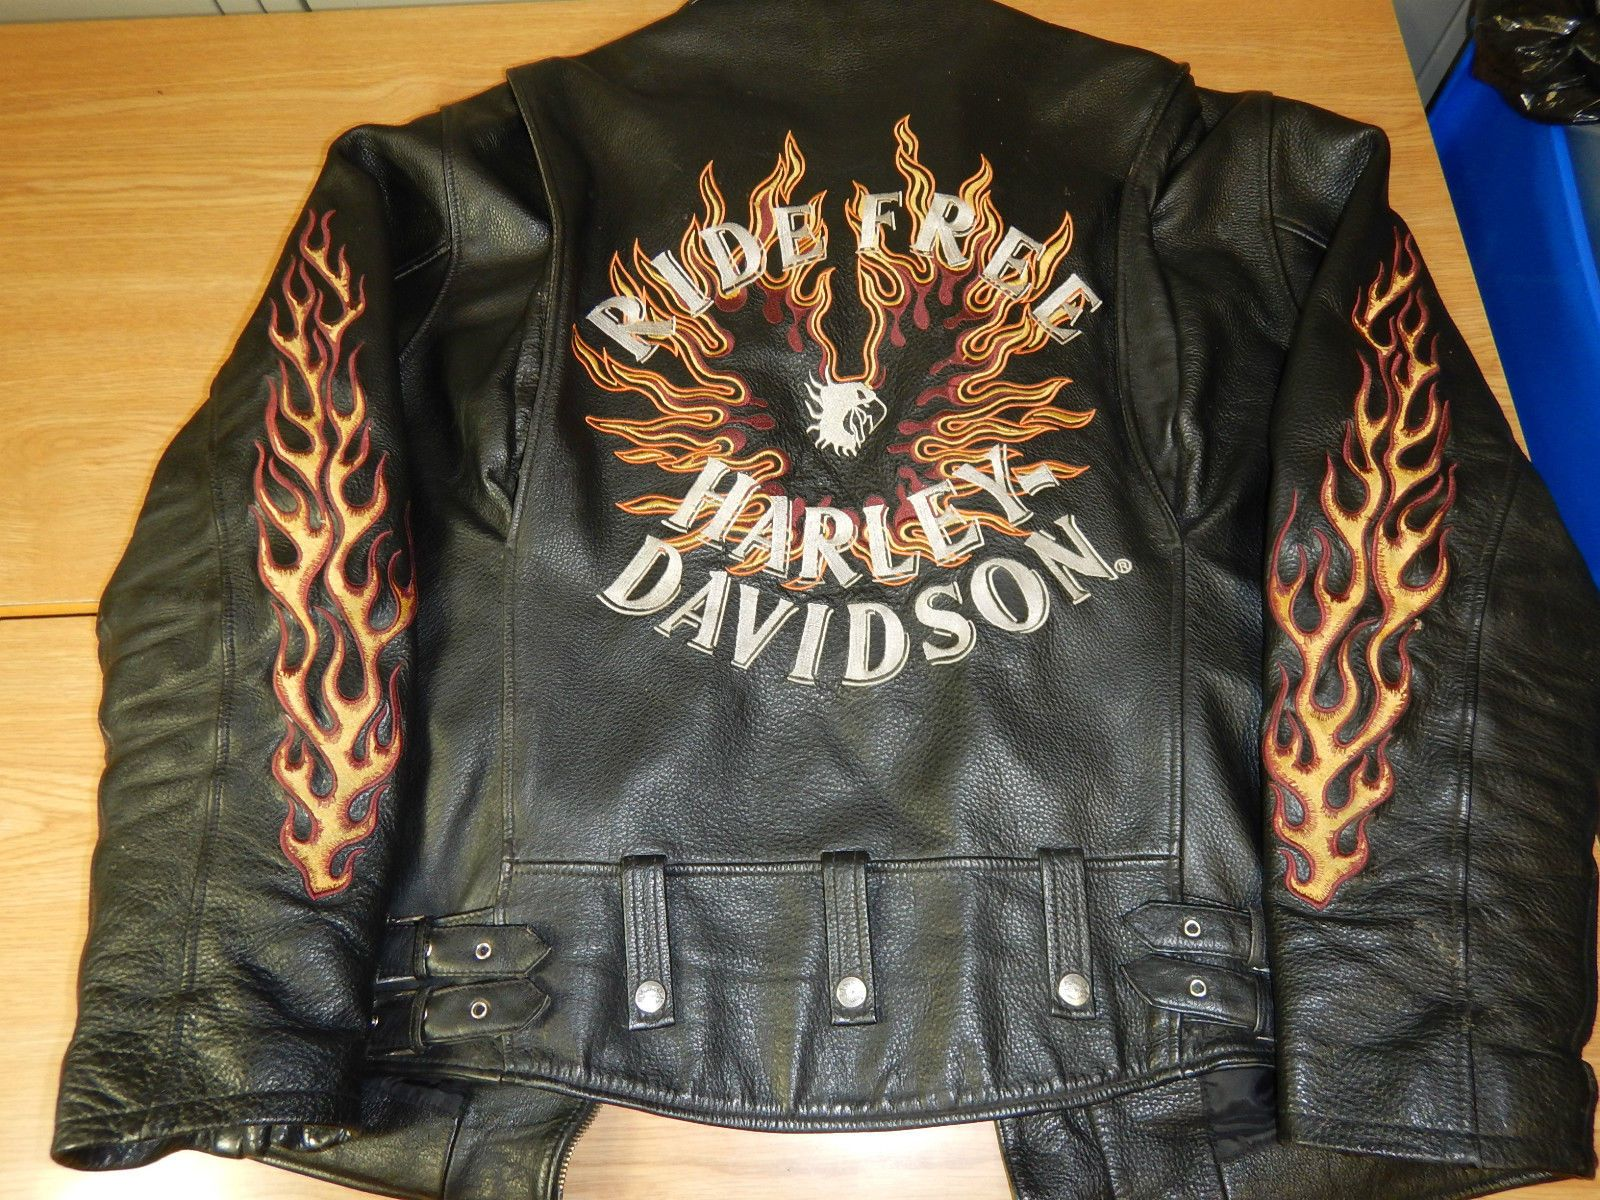 Harley davidson patches for leather jackets